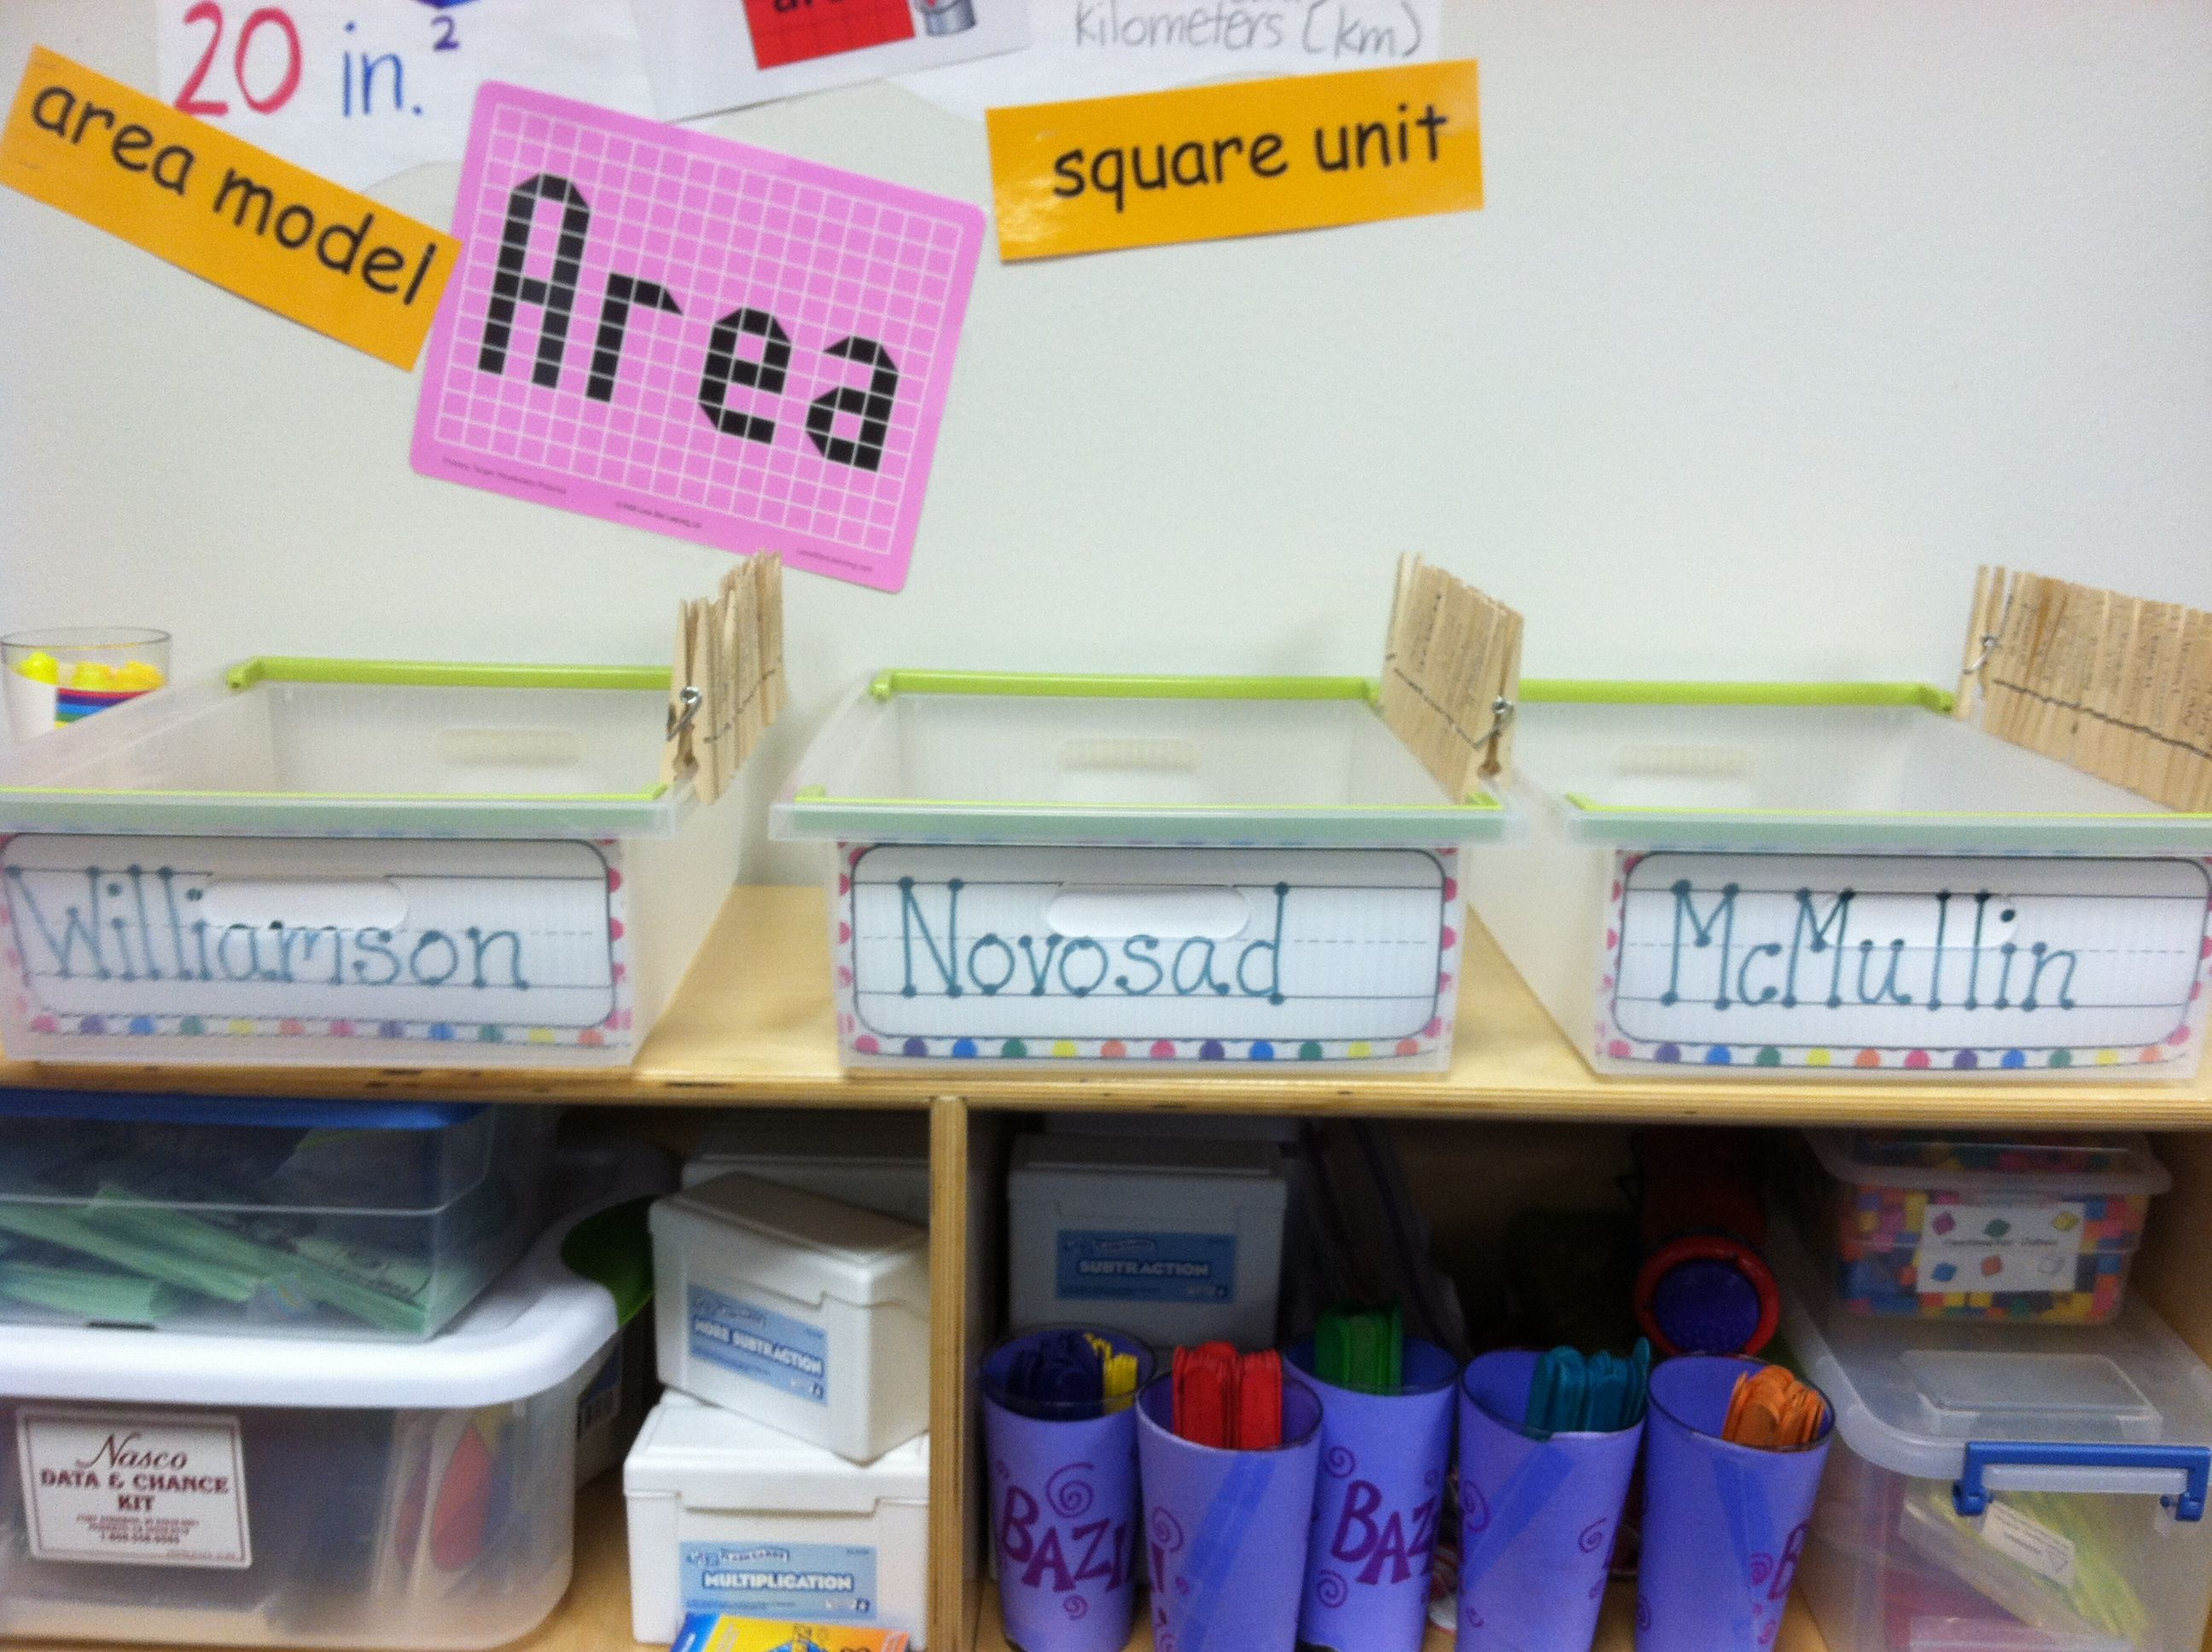 Homework Tubs- The clothes pins have each students' name on them, before class starts they pin their homework and place it into their homeroom tub. Makes it easy to see who hasn't turned in their hw with a glance. (AM MEFB 352-503)